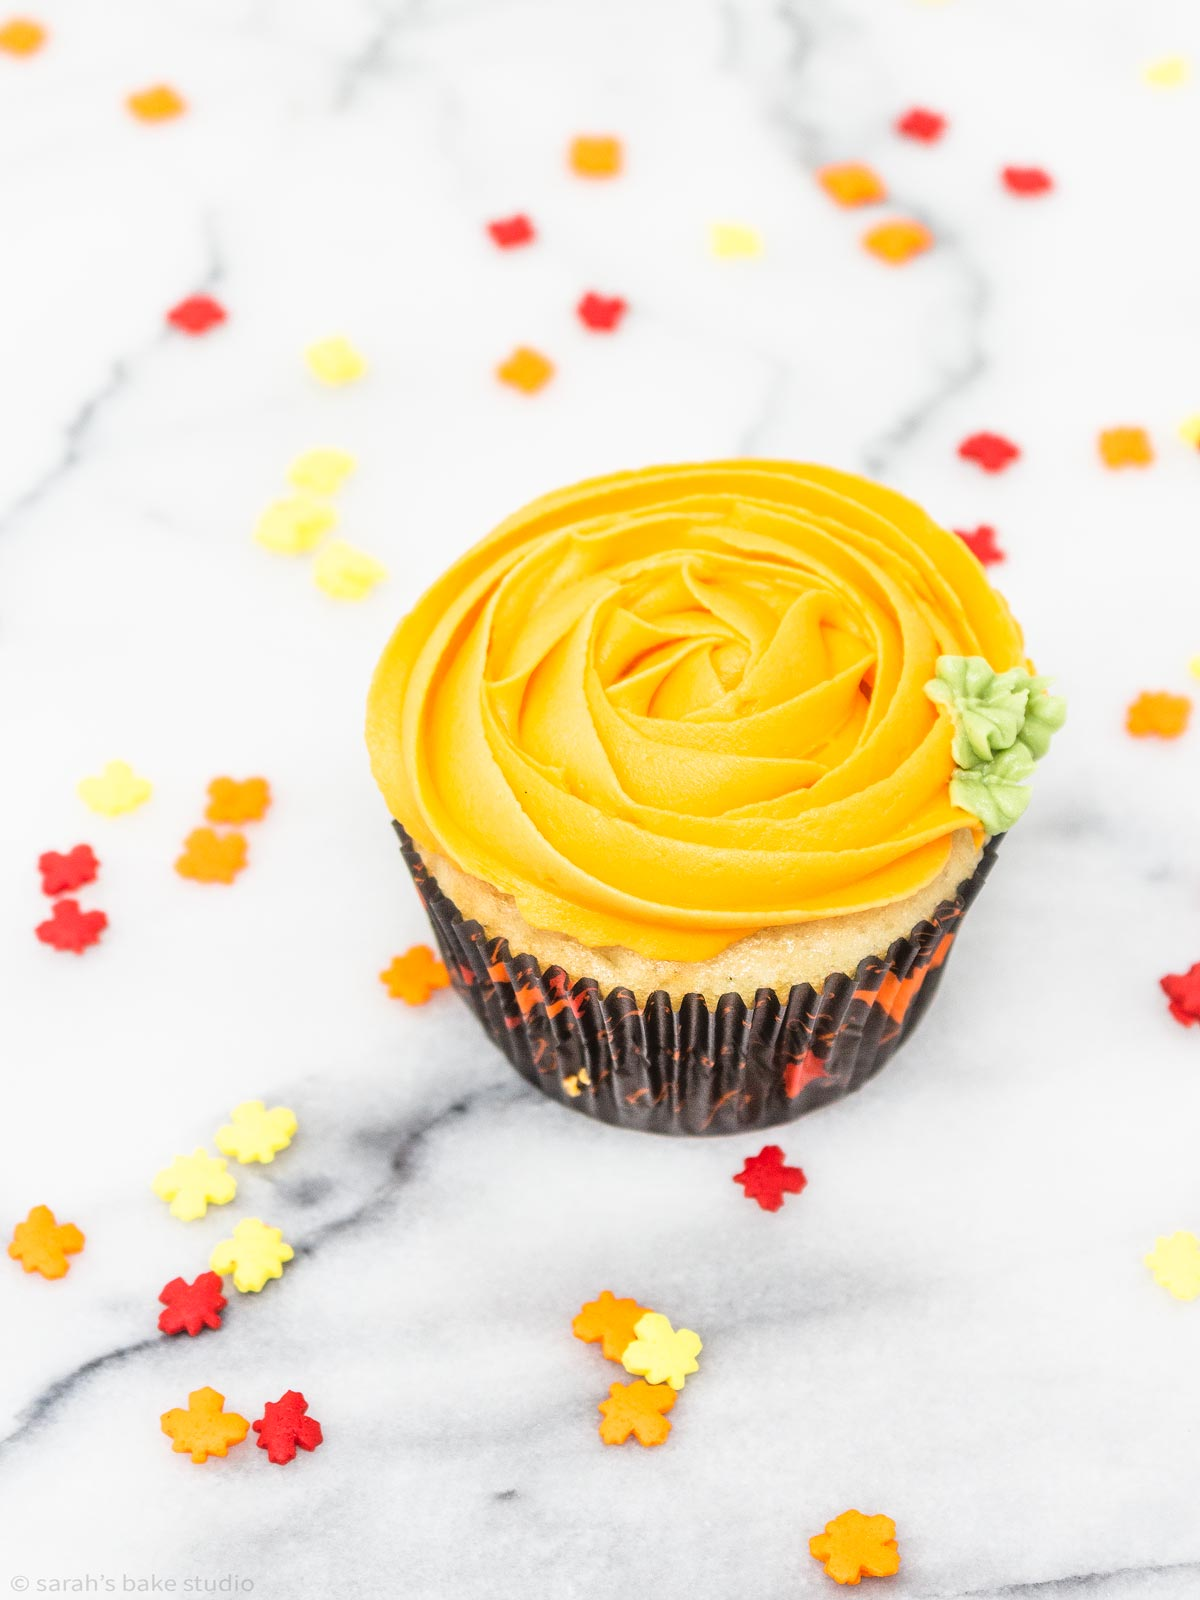 Decorated Pumpkin Cupcakes - your favorite cupcakes decorated with an orange buttercream frosting swirl, make these beautiful fall cupcakes look like they were plucked right out of the pumpkin patch.